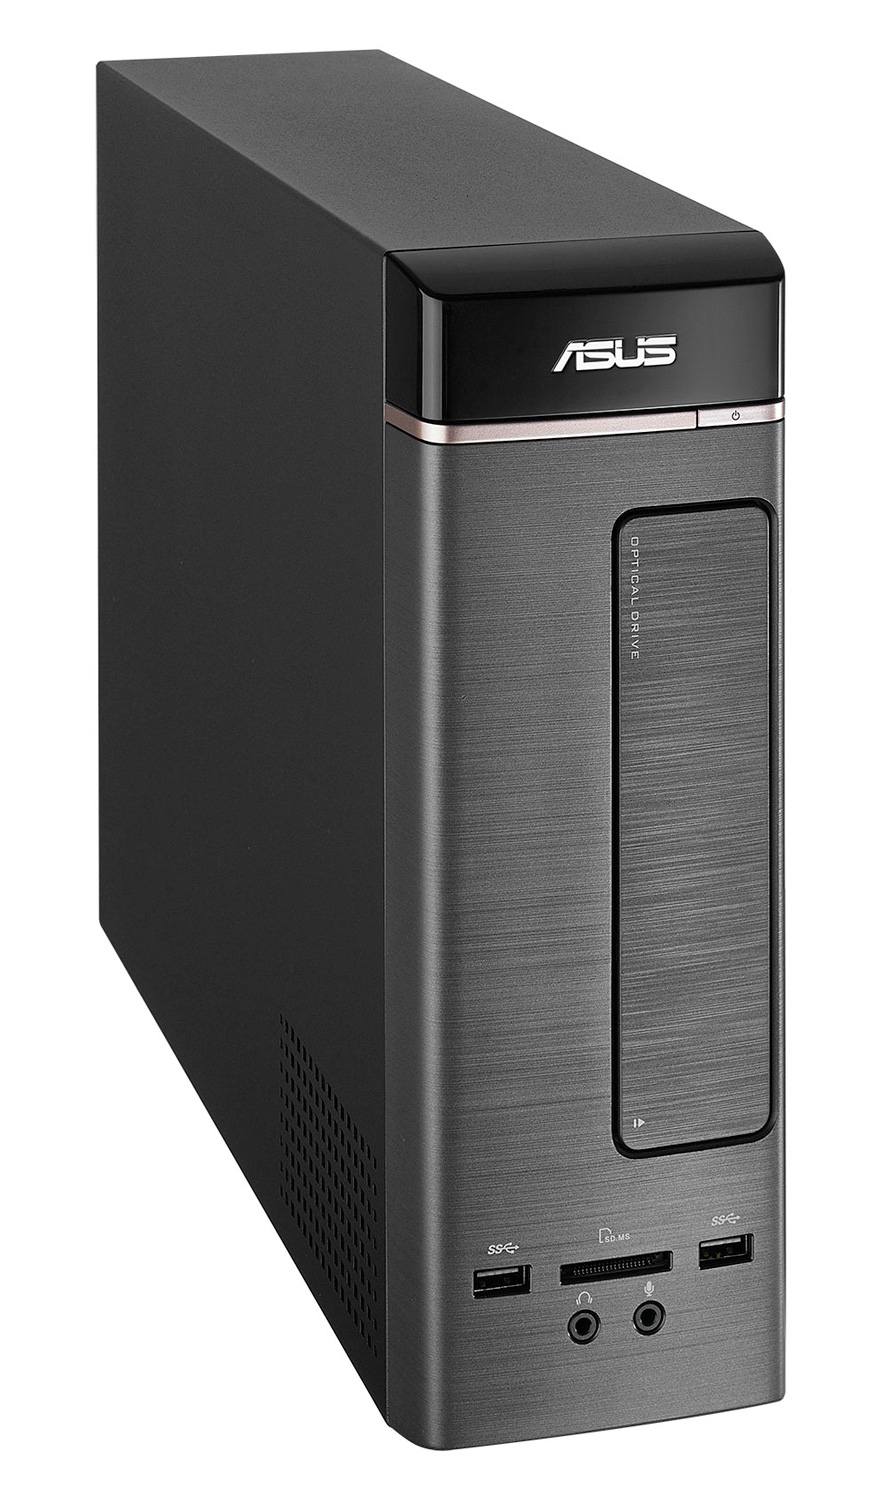 asus f20cd fr010t achetez au meilleur prix. Black Bedroom Furniture Sets. Home Design Ideas